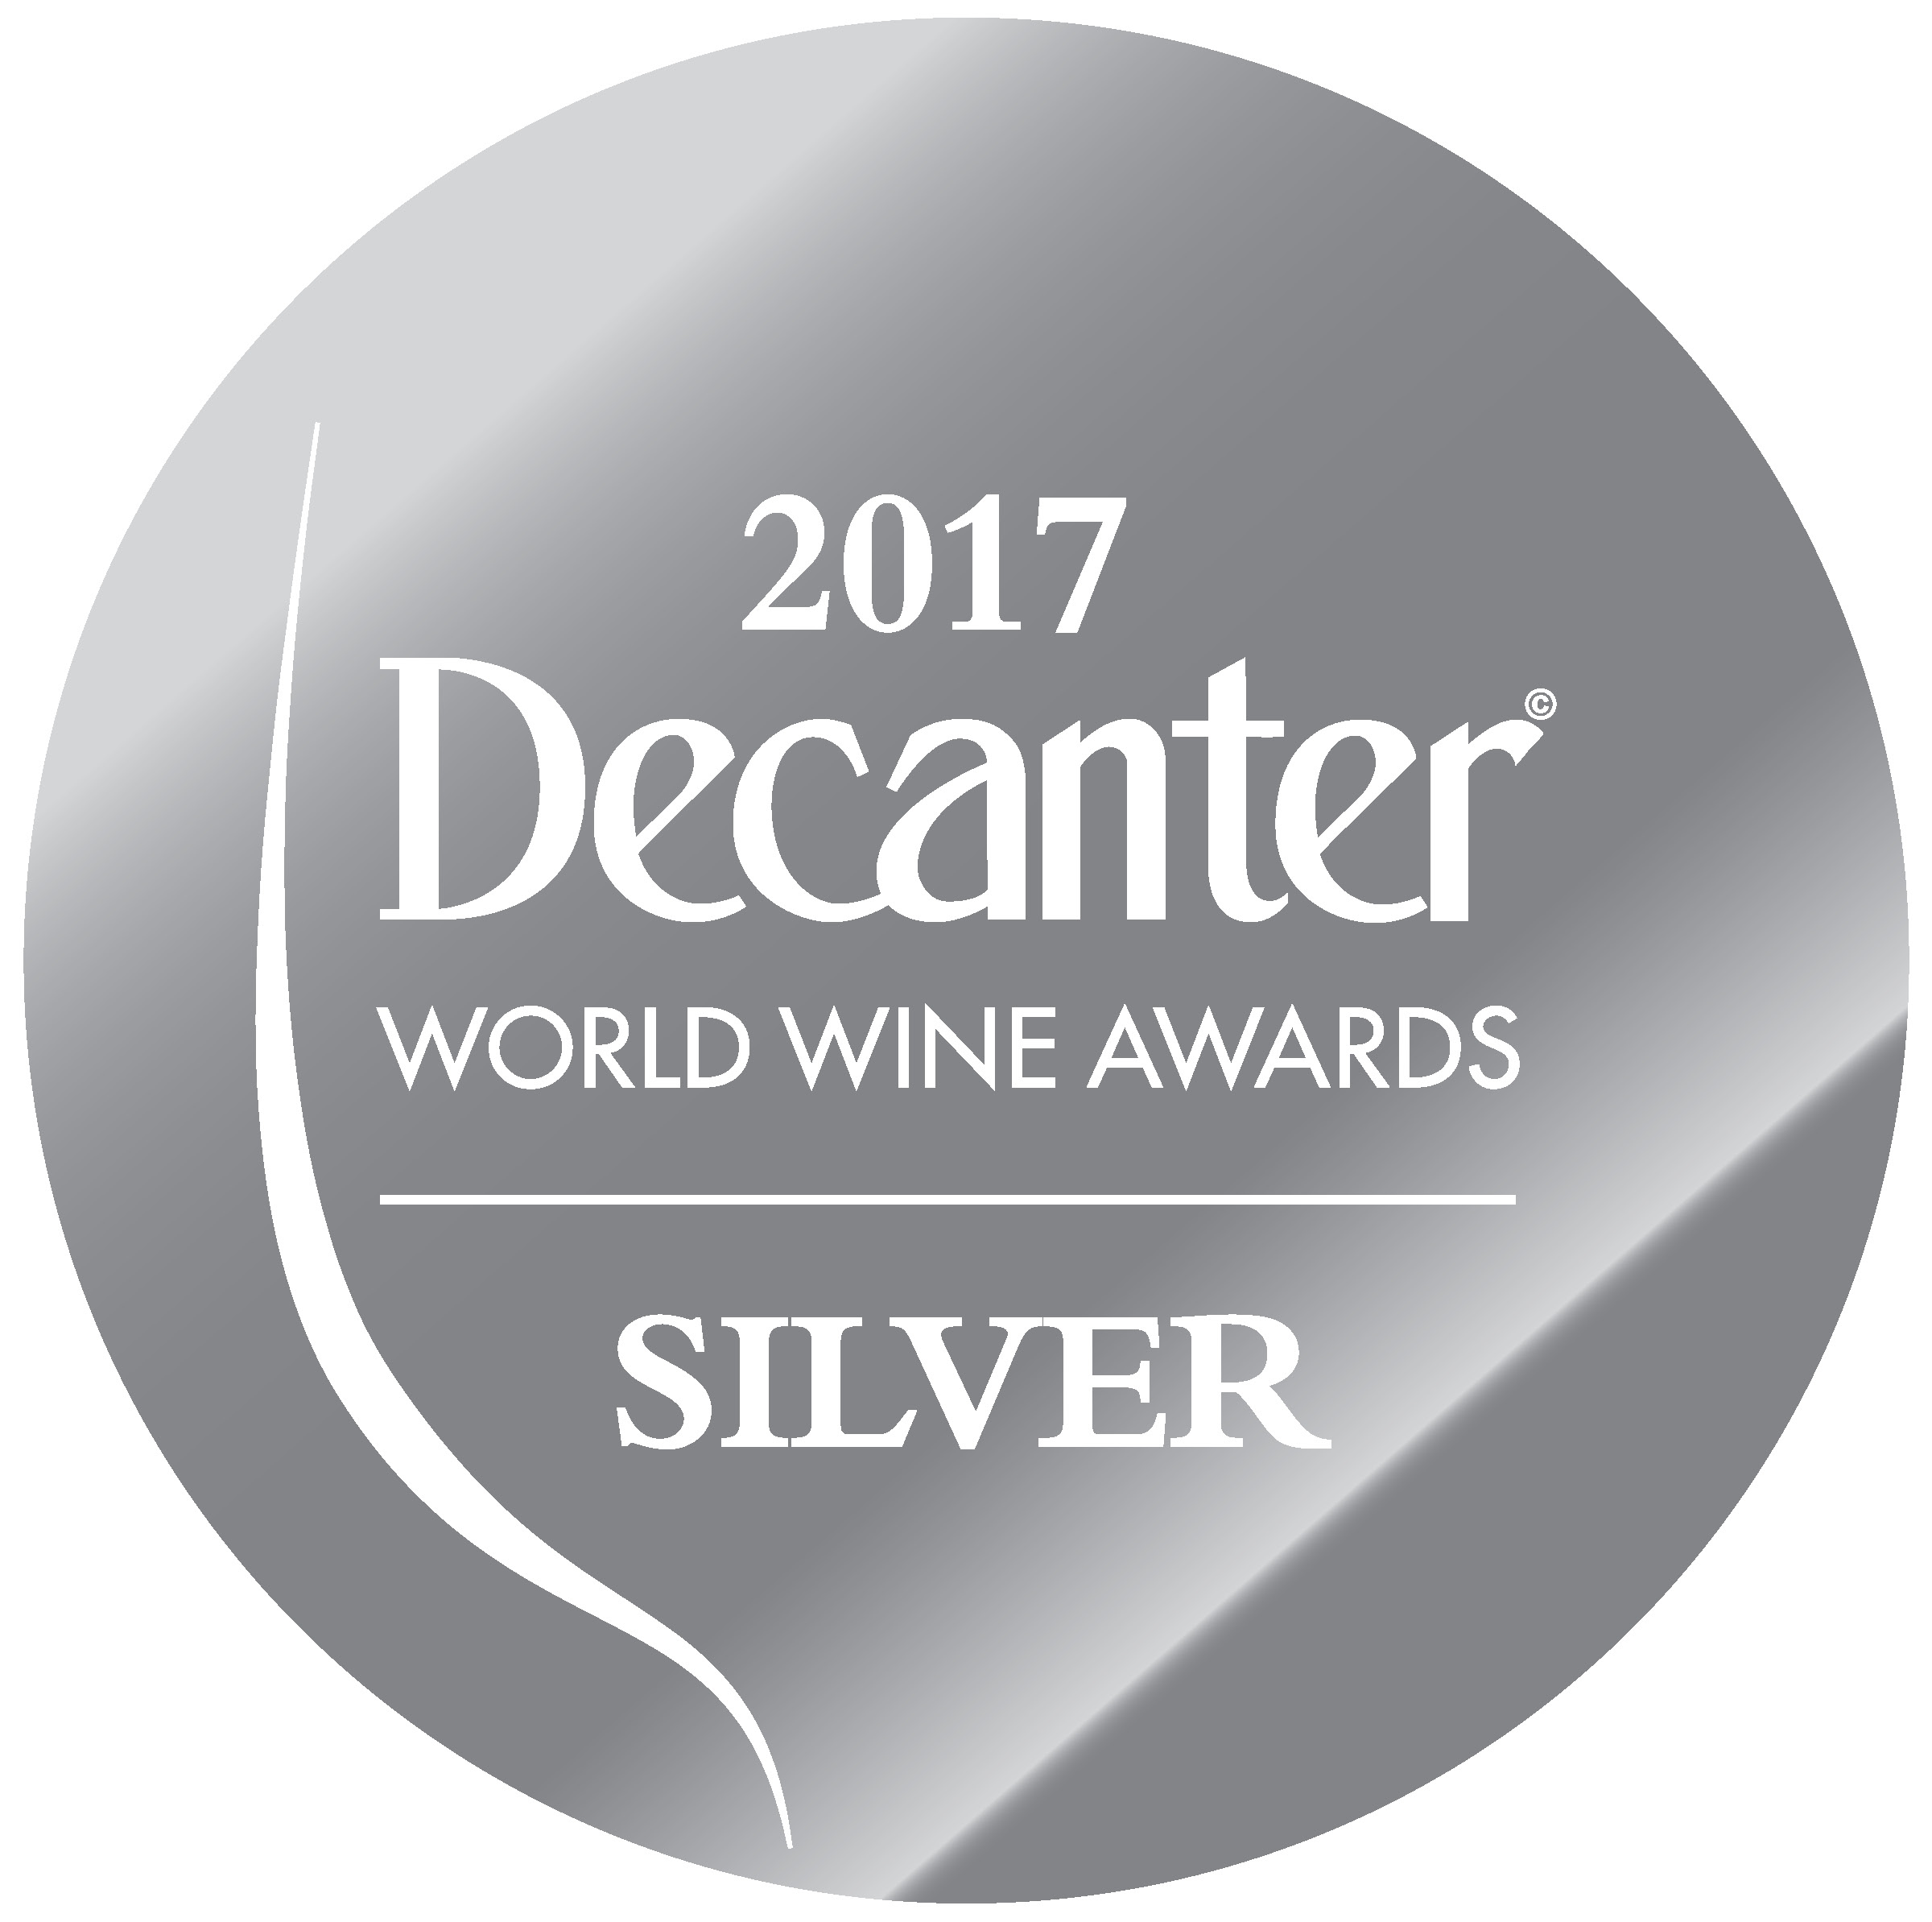 May 2017: 90 points & silver medal DECANTER WORLD WINE AWARDS for vintage 2015